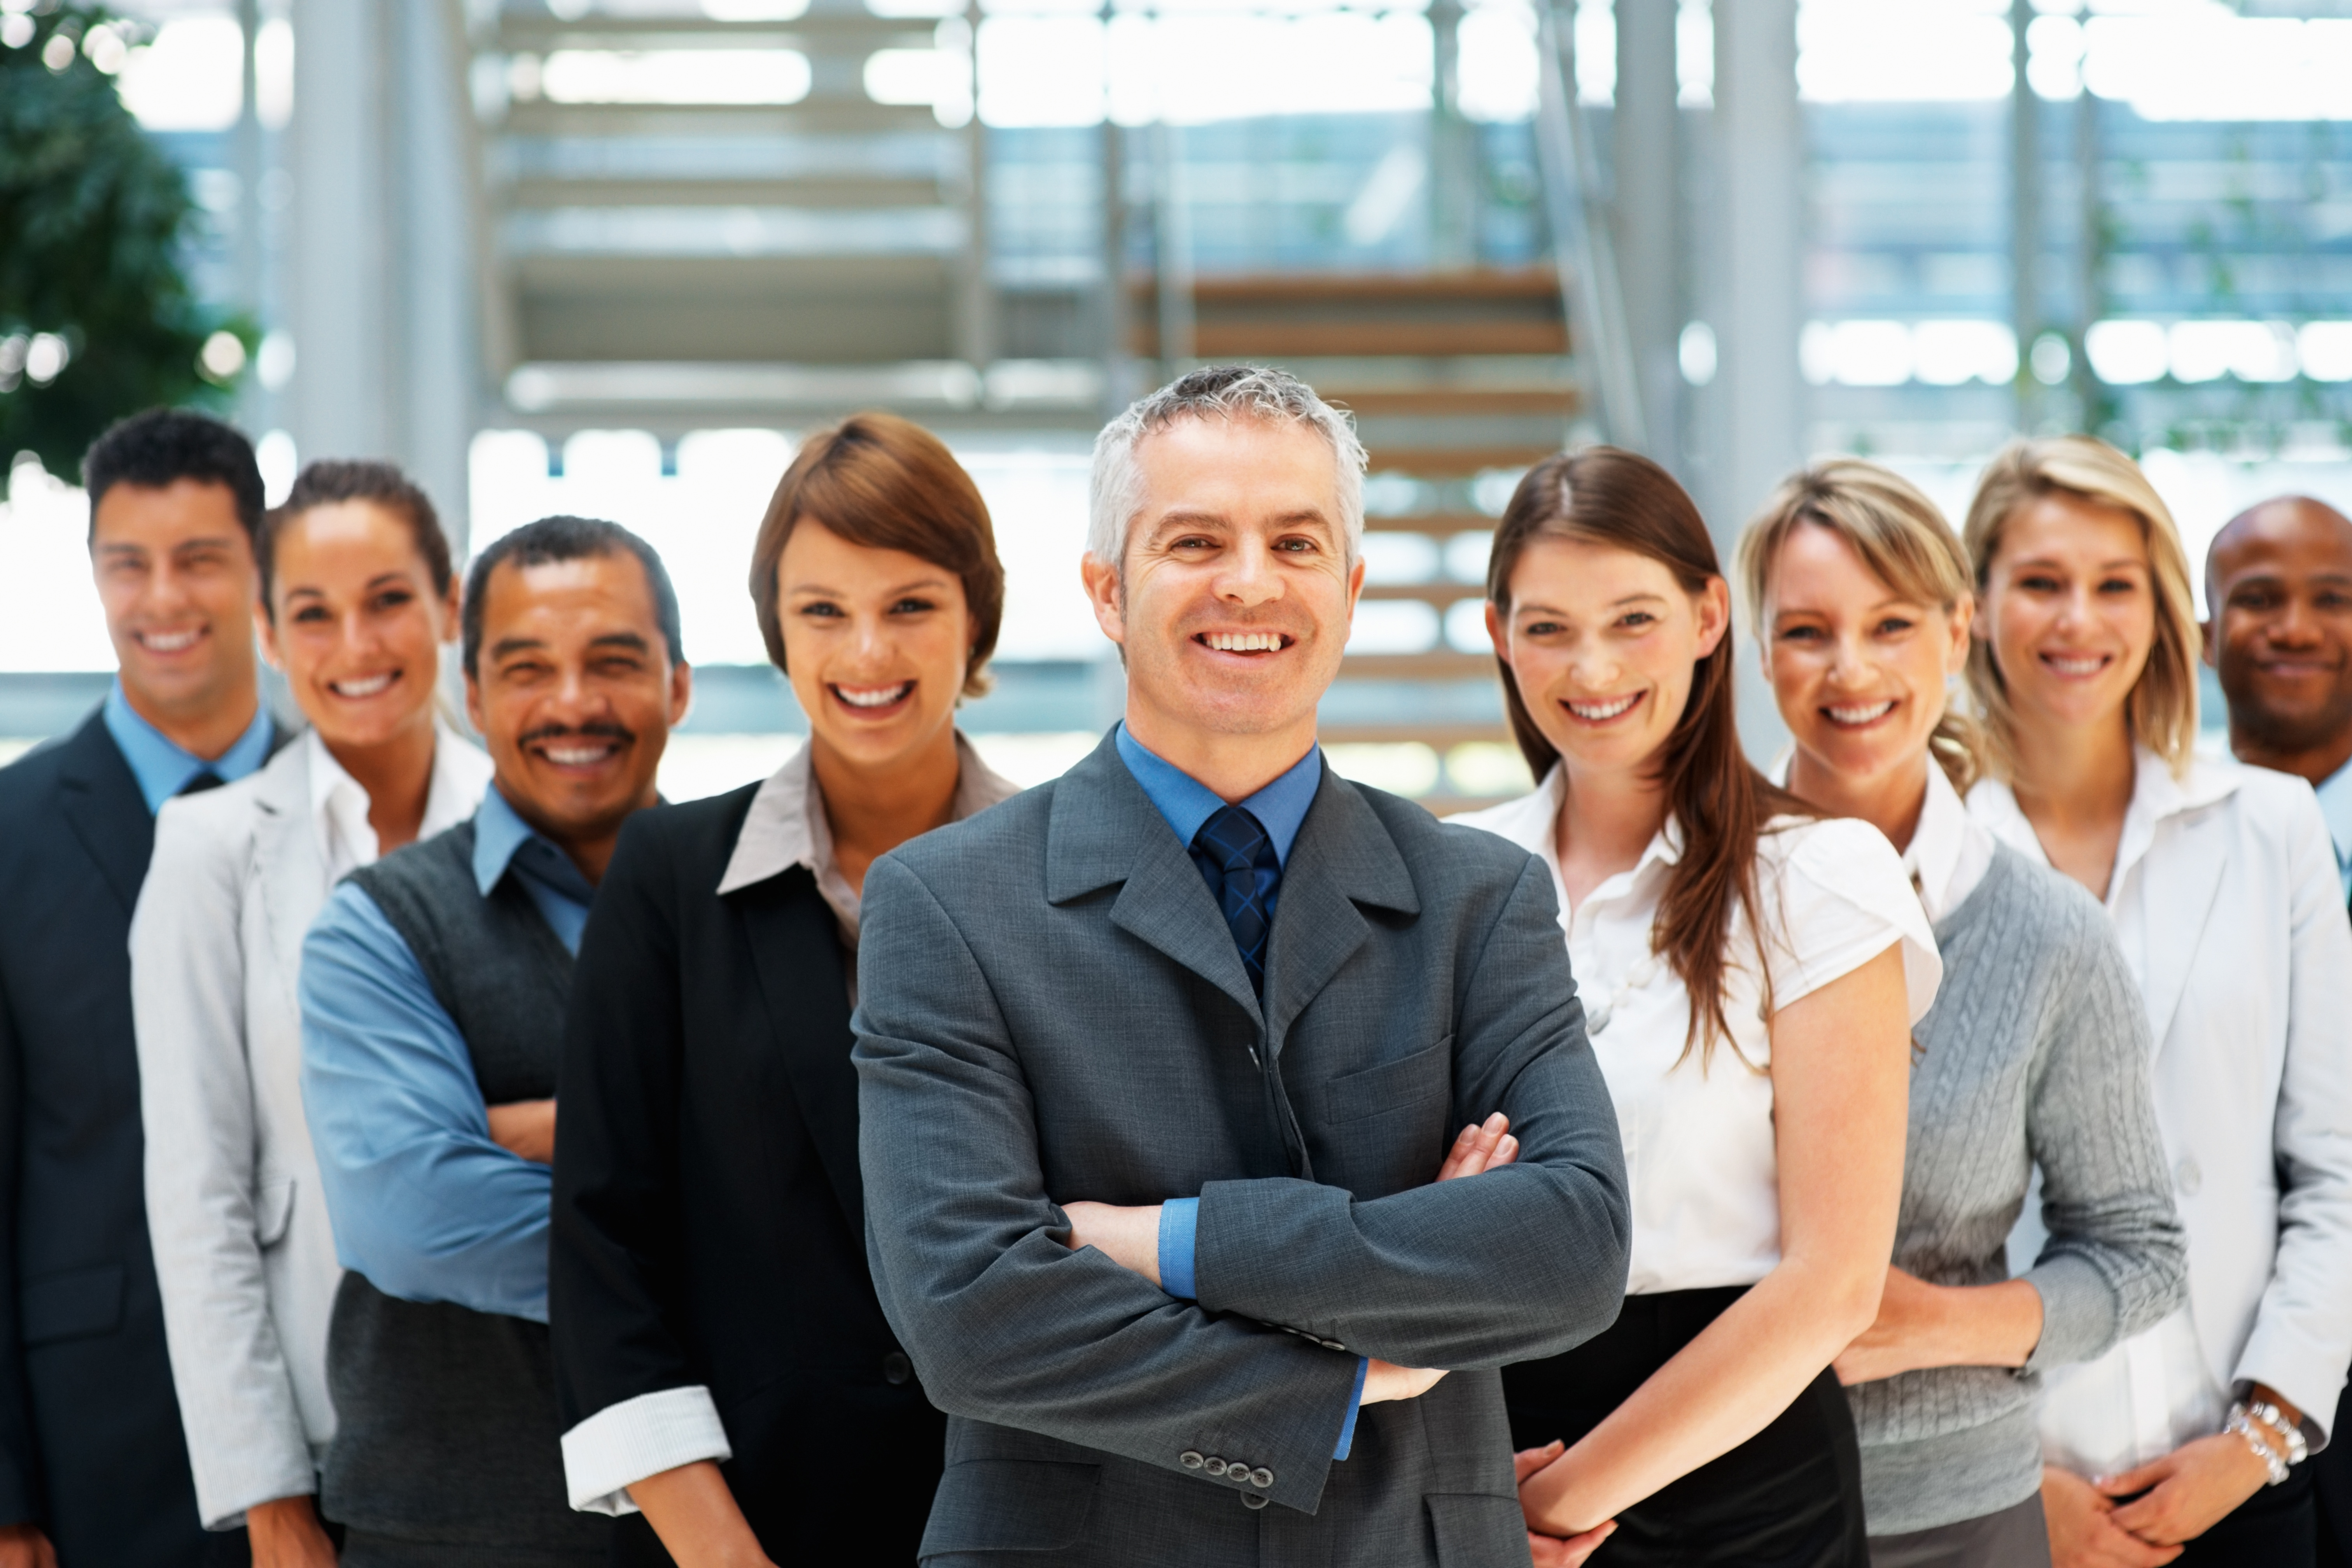 management and corporate culture For hr leaders, corporate culture is a conundrum on the one hand, it's vital happy, motivated employees working toward shared values deliver a consistent experience to customers, bringing tangible financial rewards.